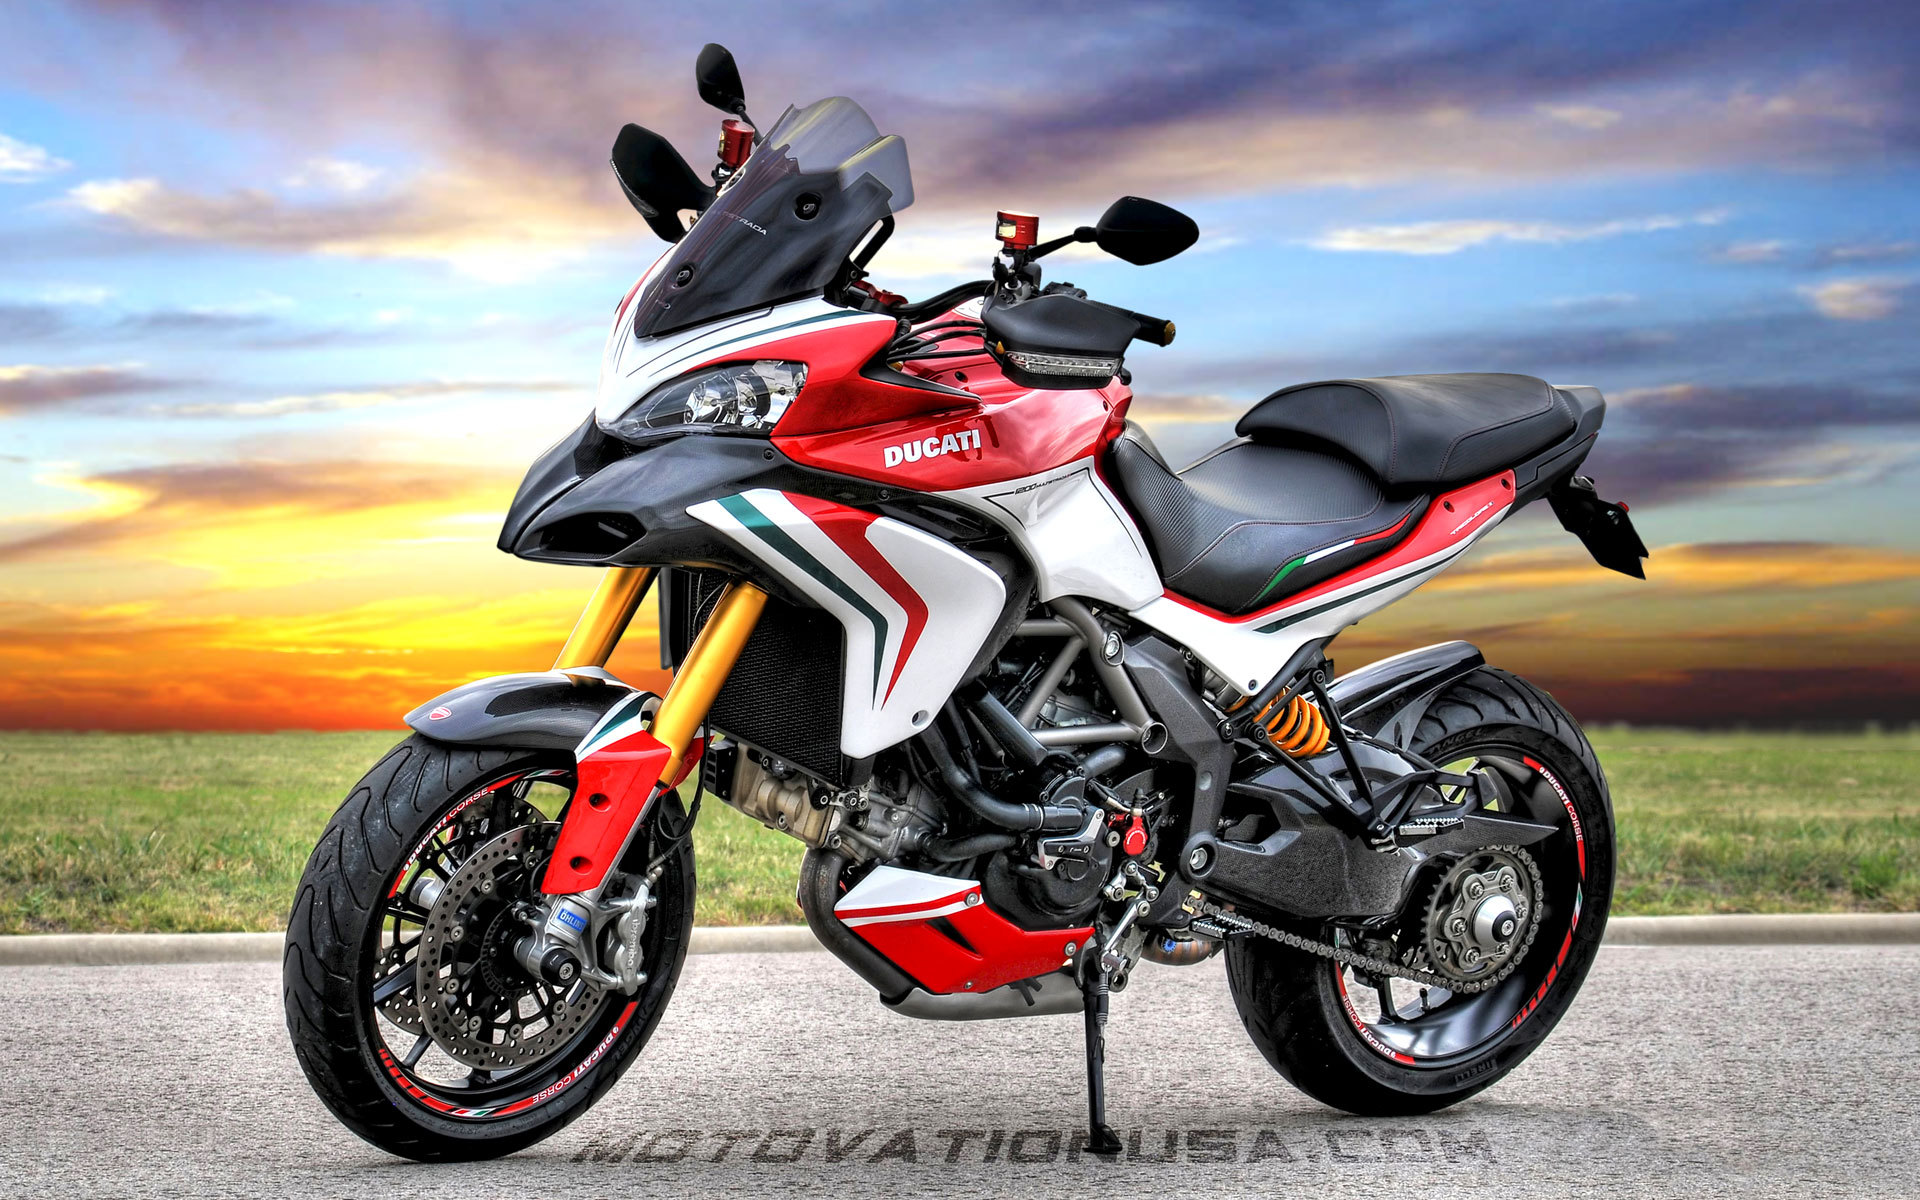 2014 ducati multistrada 1200 moto zombdrive com. Black Bedroom Furniture Sets. Home Design Ideas